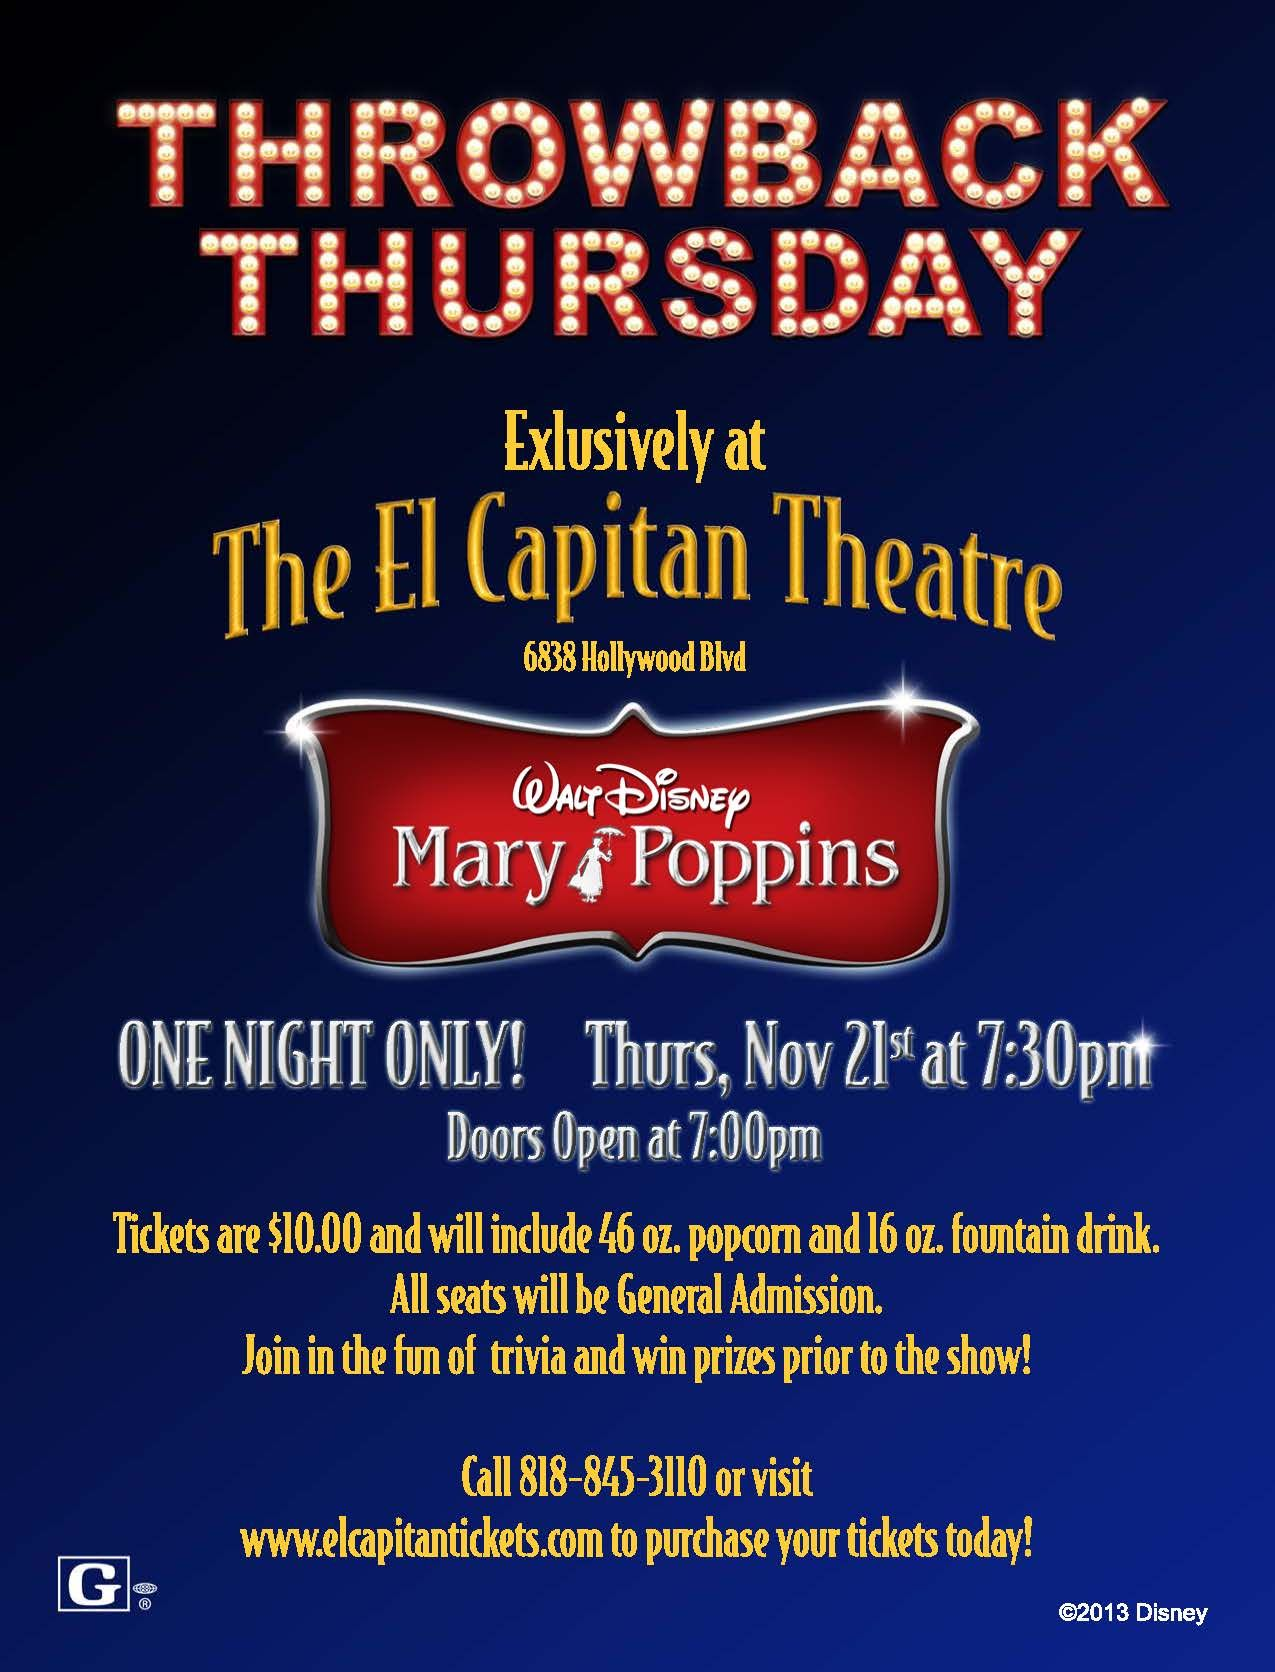 It's official... Mary Poppins is the musical you chose for our next Throwback Thursday event, November 21st @ 7:30PM, doors open at 7PM. Tickets are on sale now at the Box Office, by phone 1-800-DISNEY6, and online at www.elcapitantick...! All tickets are General Admission $10, includes a 46oz popcorn and 16oz Fountain Drink. #elcapthrowback